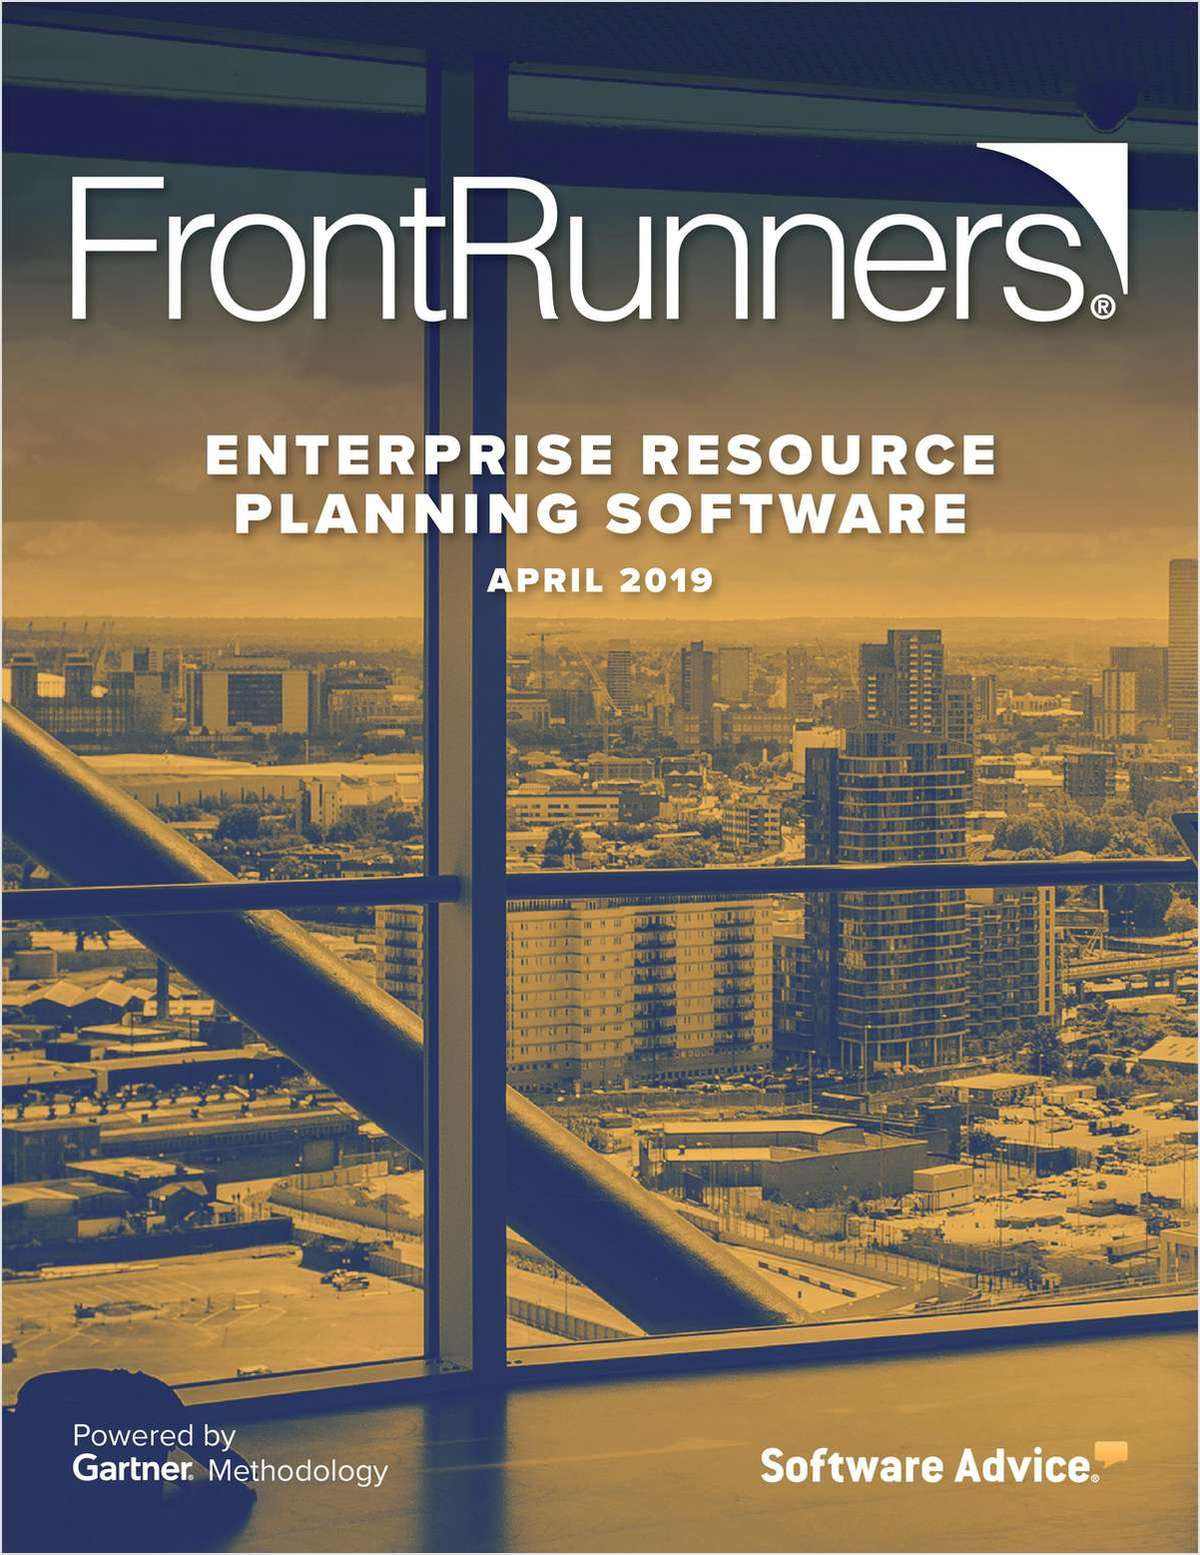 Top Rated FrontRunners for Enterprise Resource Planning (ERP) Software